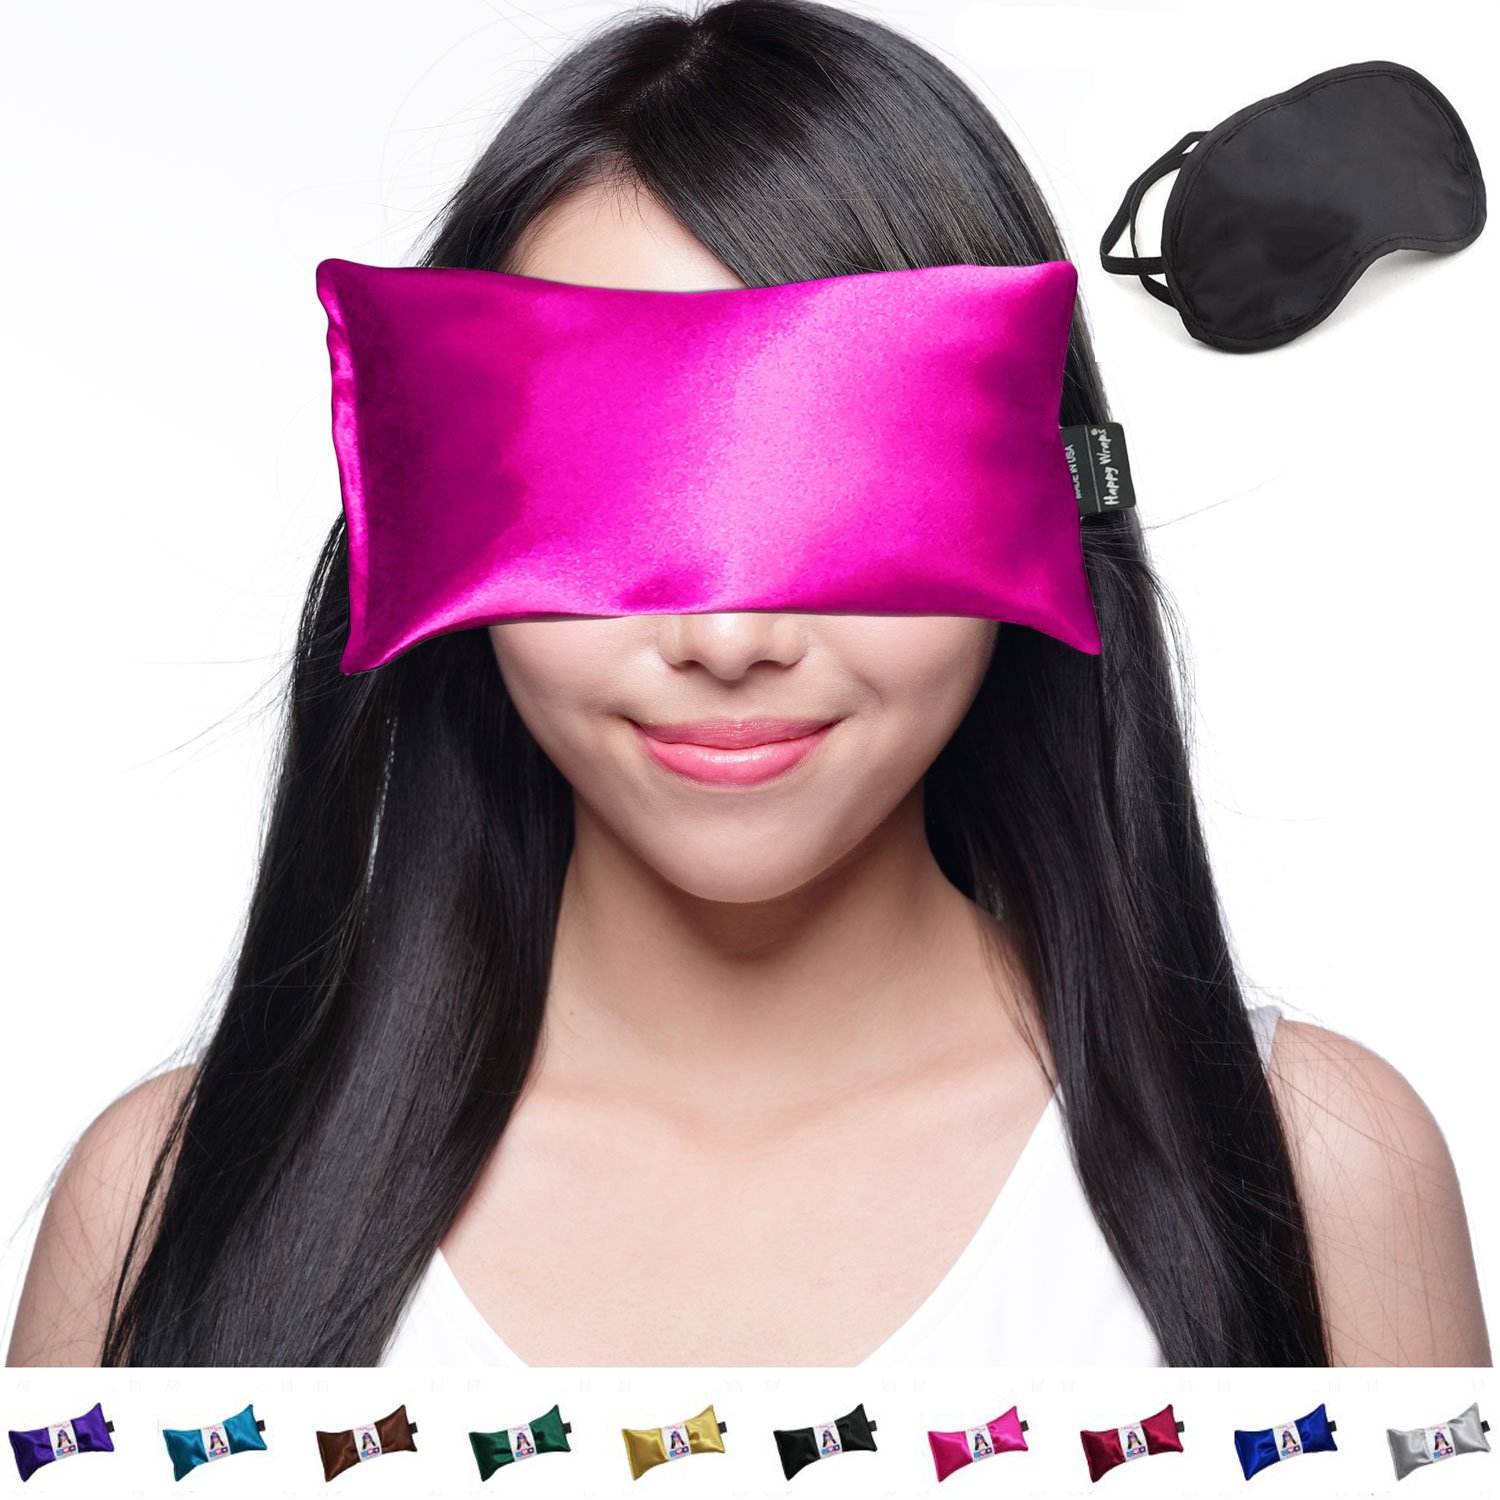 Hot Cold Lavender Eye Pillow and Eye Mask for Sleep, Yoga, Migraine Headaches, Stress Relief. By Happy Wraps - Pink